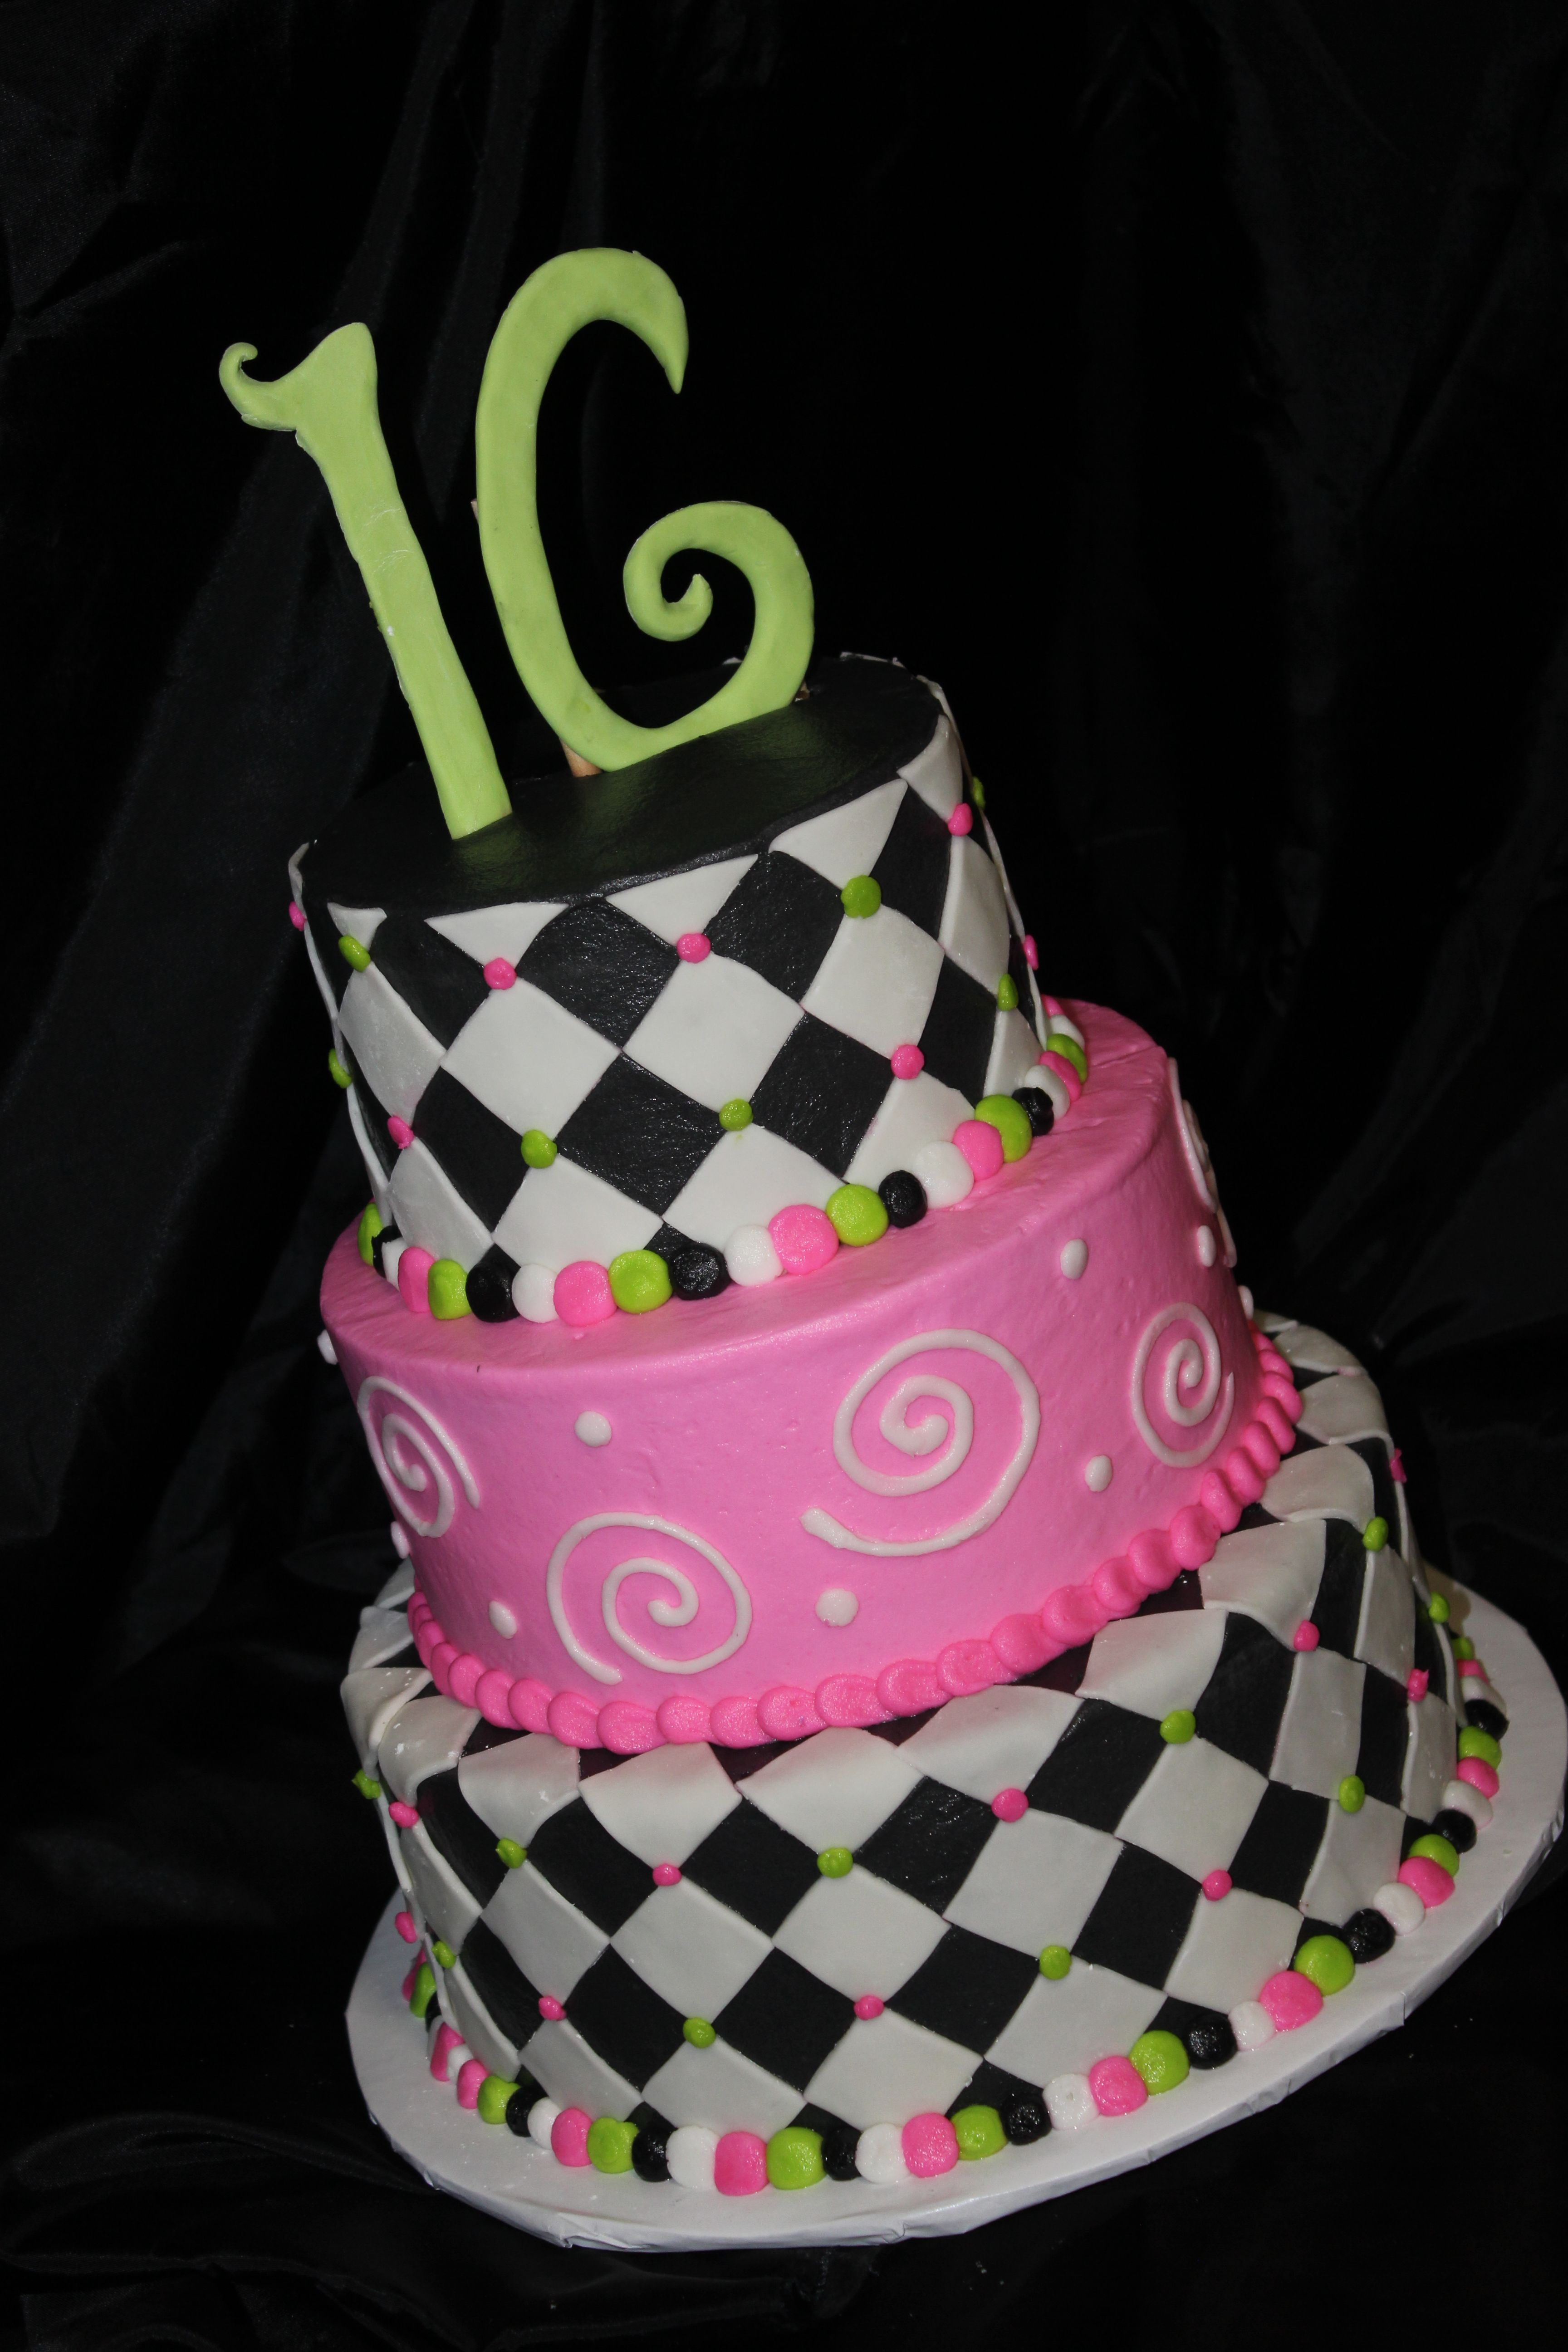 16th cakes